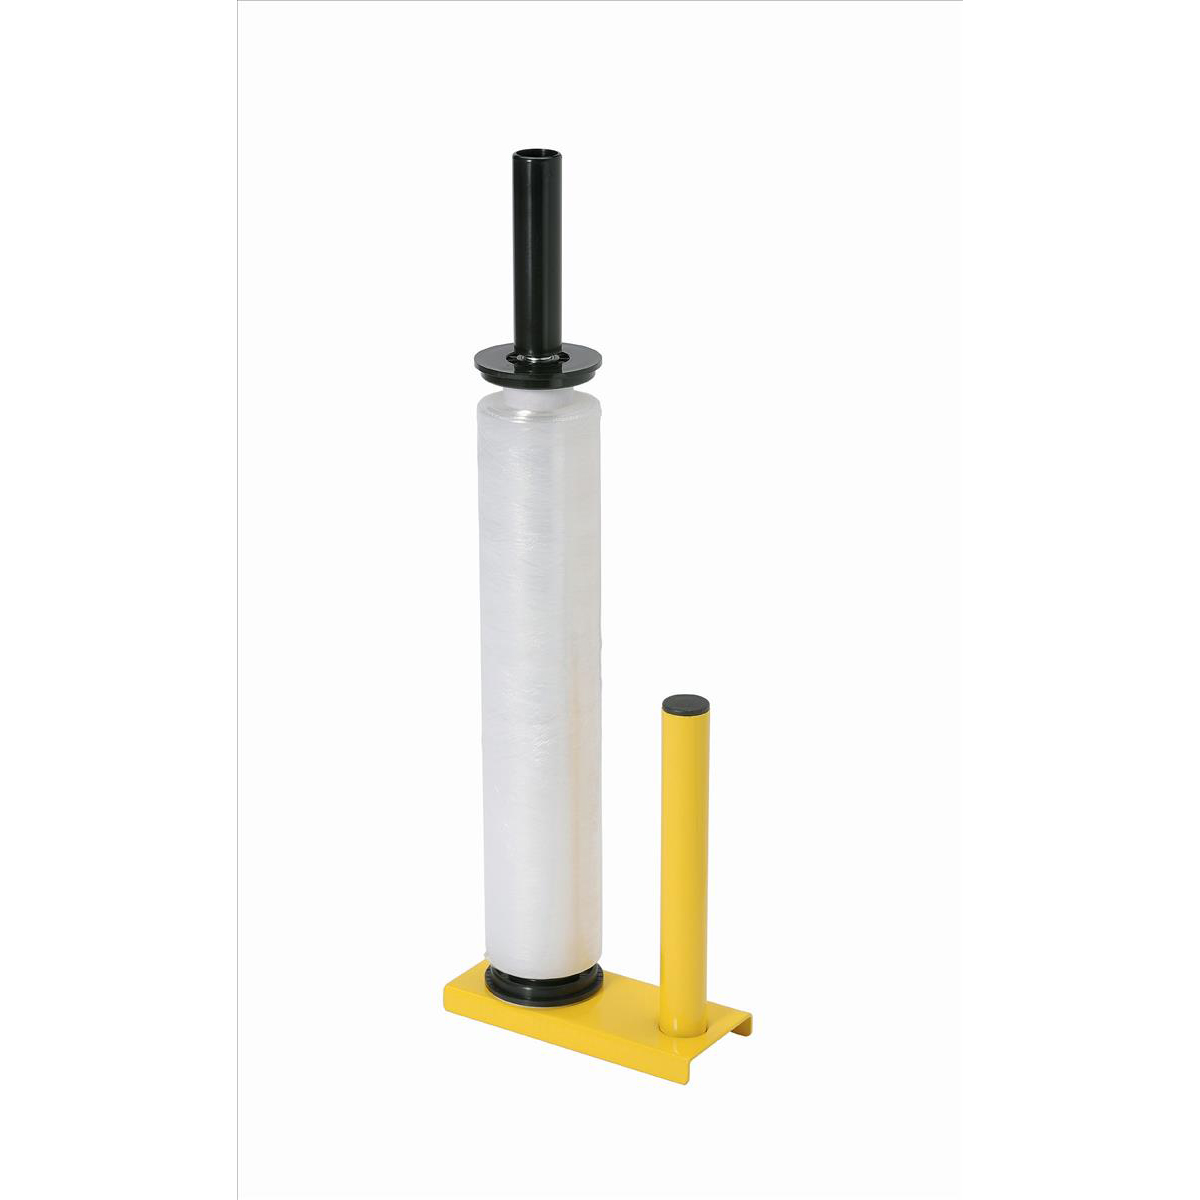 Foam Stretchwrap Dispenser Freestanding Cores 38 & 50 & 75mm and Lengths 400 & 500mm